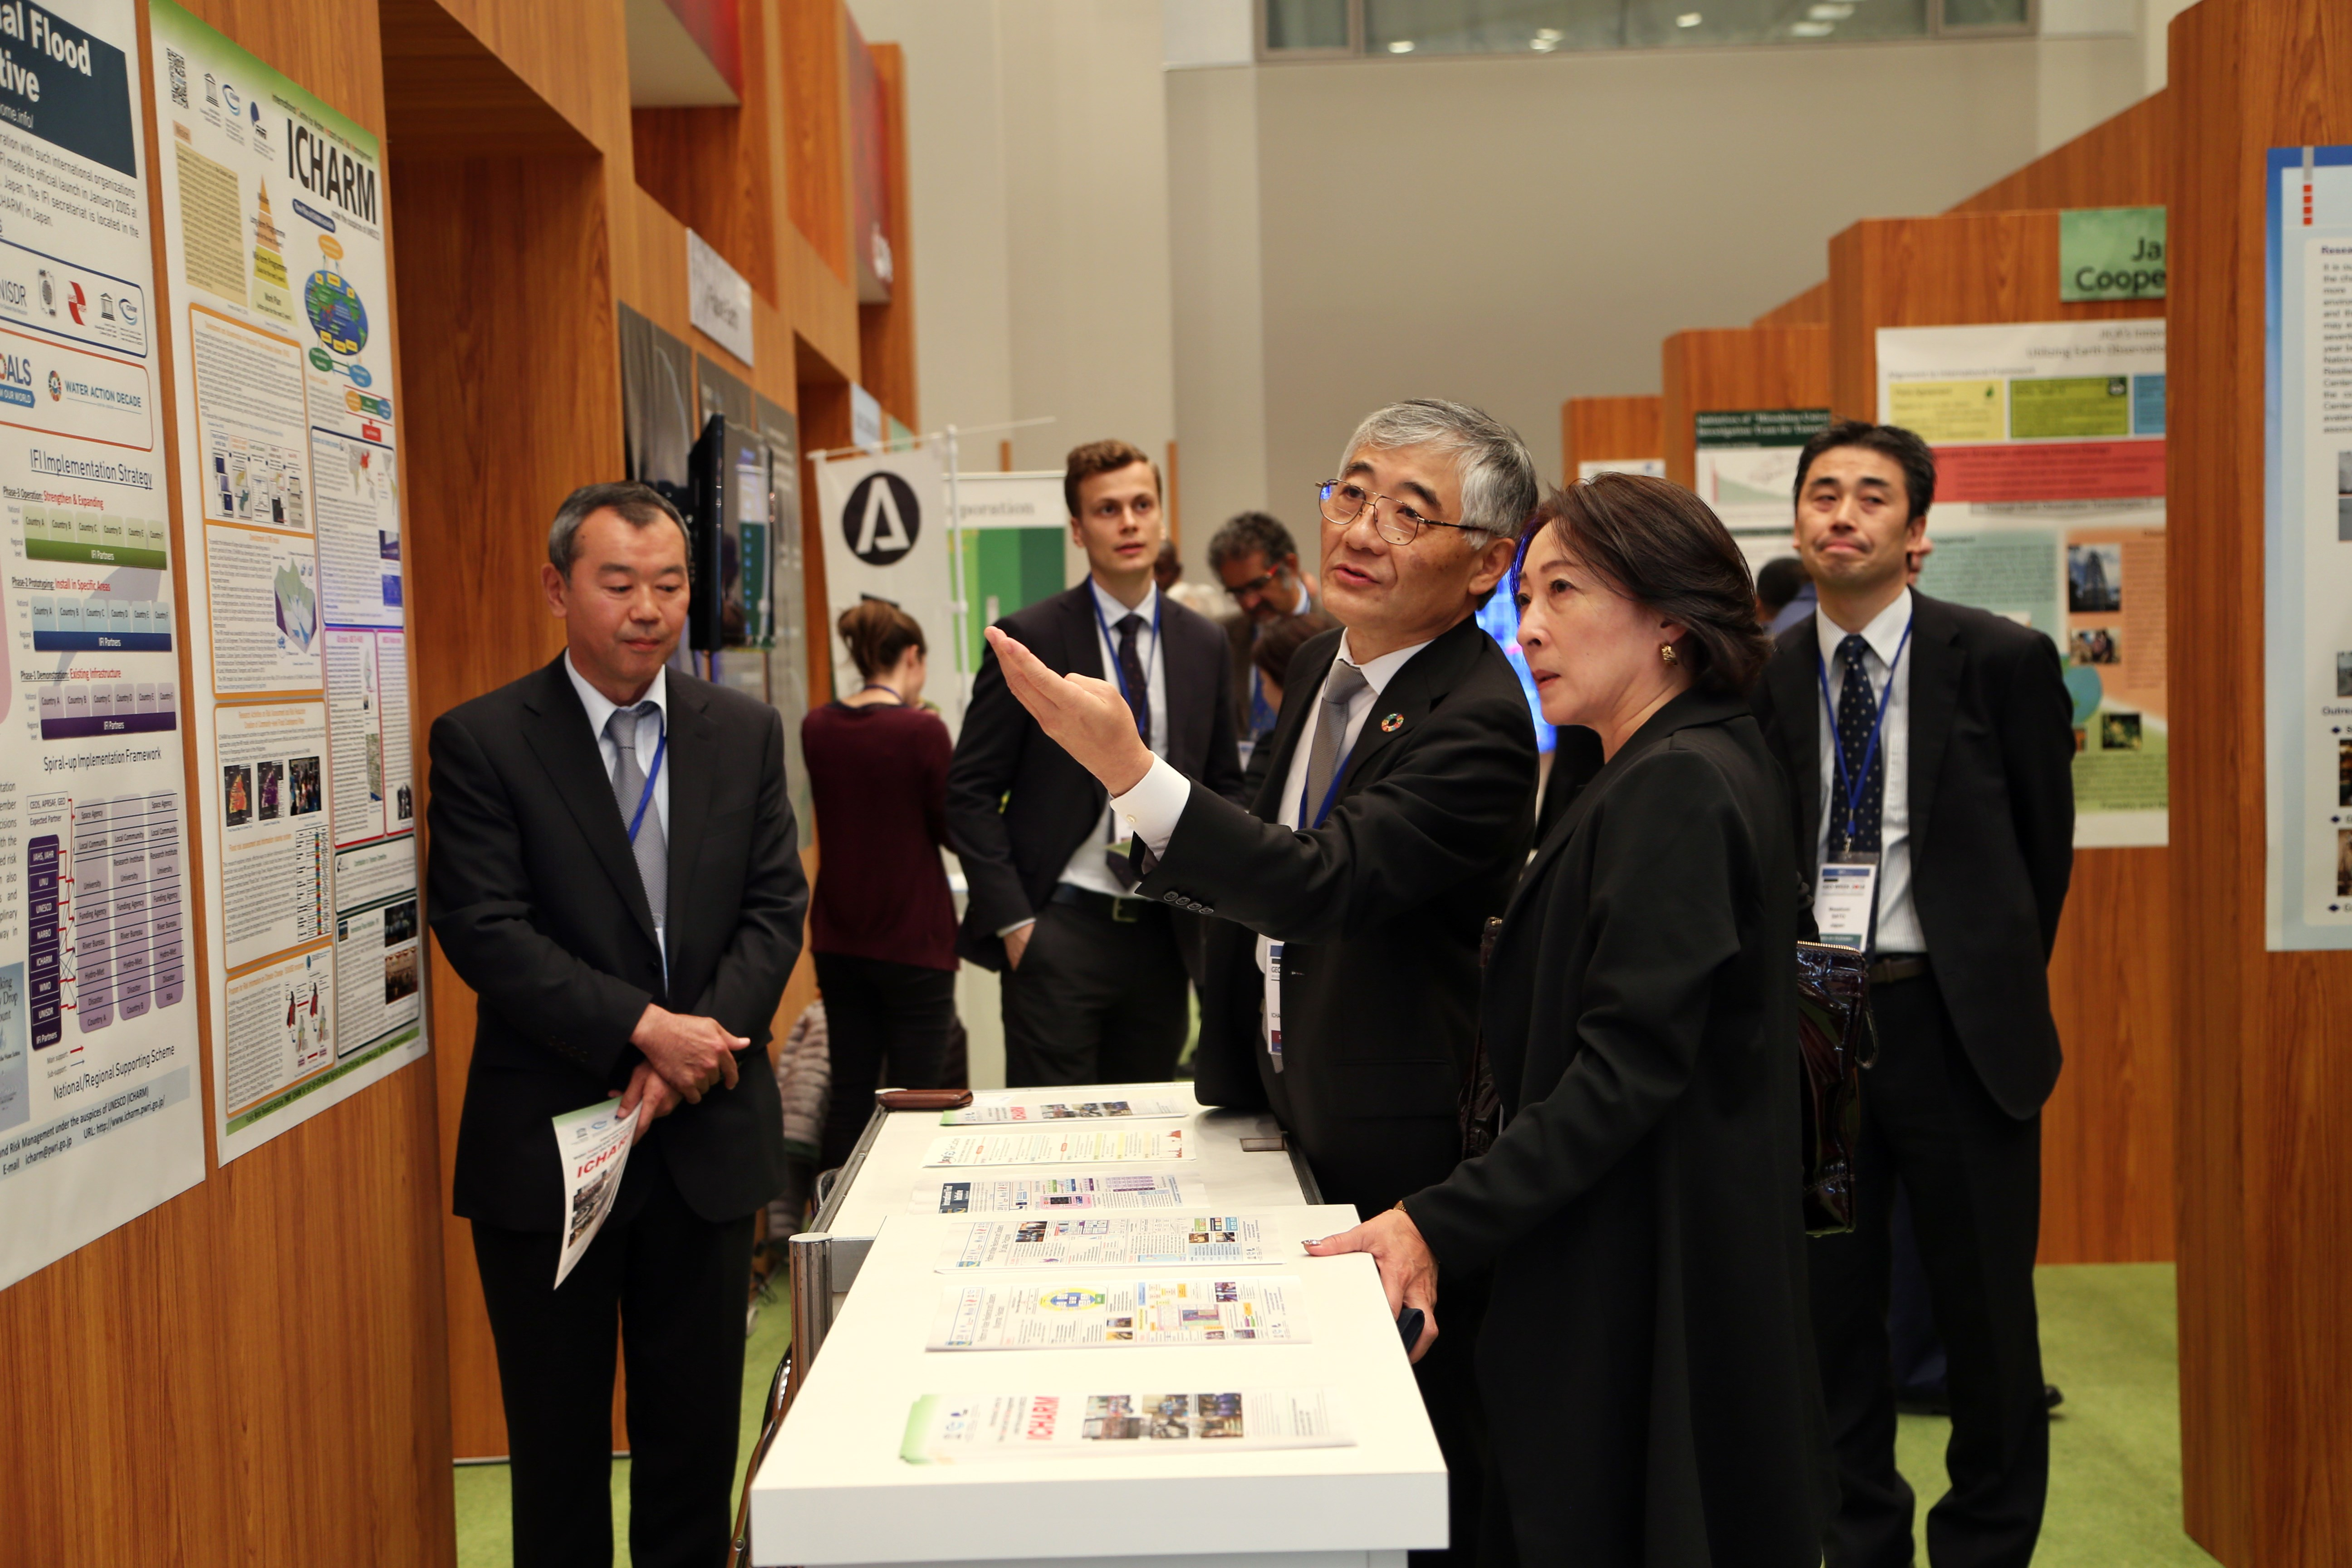 ICHARM Director Toshio Koike speaks with Mami Mizutori, Special Representative of the United Nations Secretary-General for Disaster Risk Reduction, at the GEO Week 2018 Exhibition.